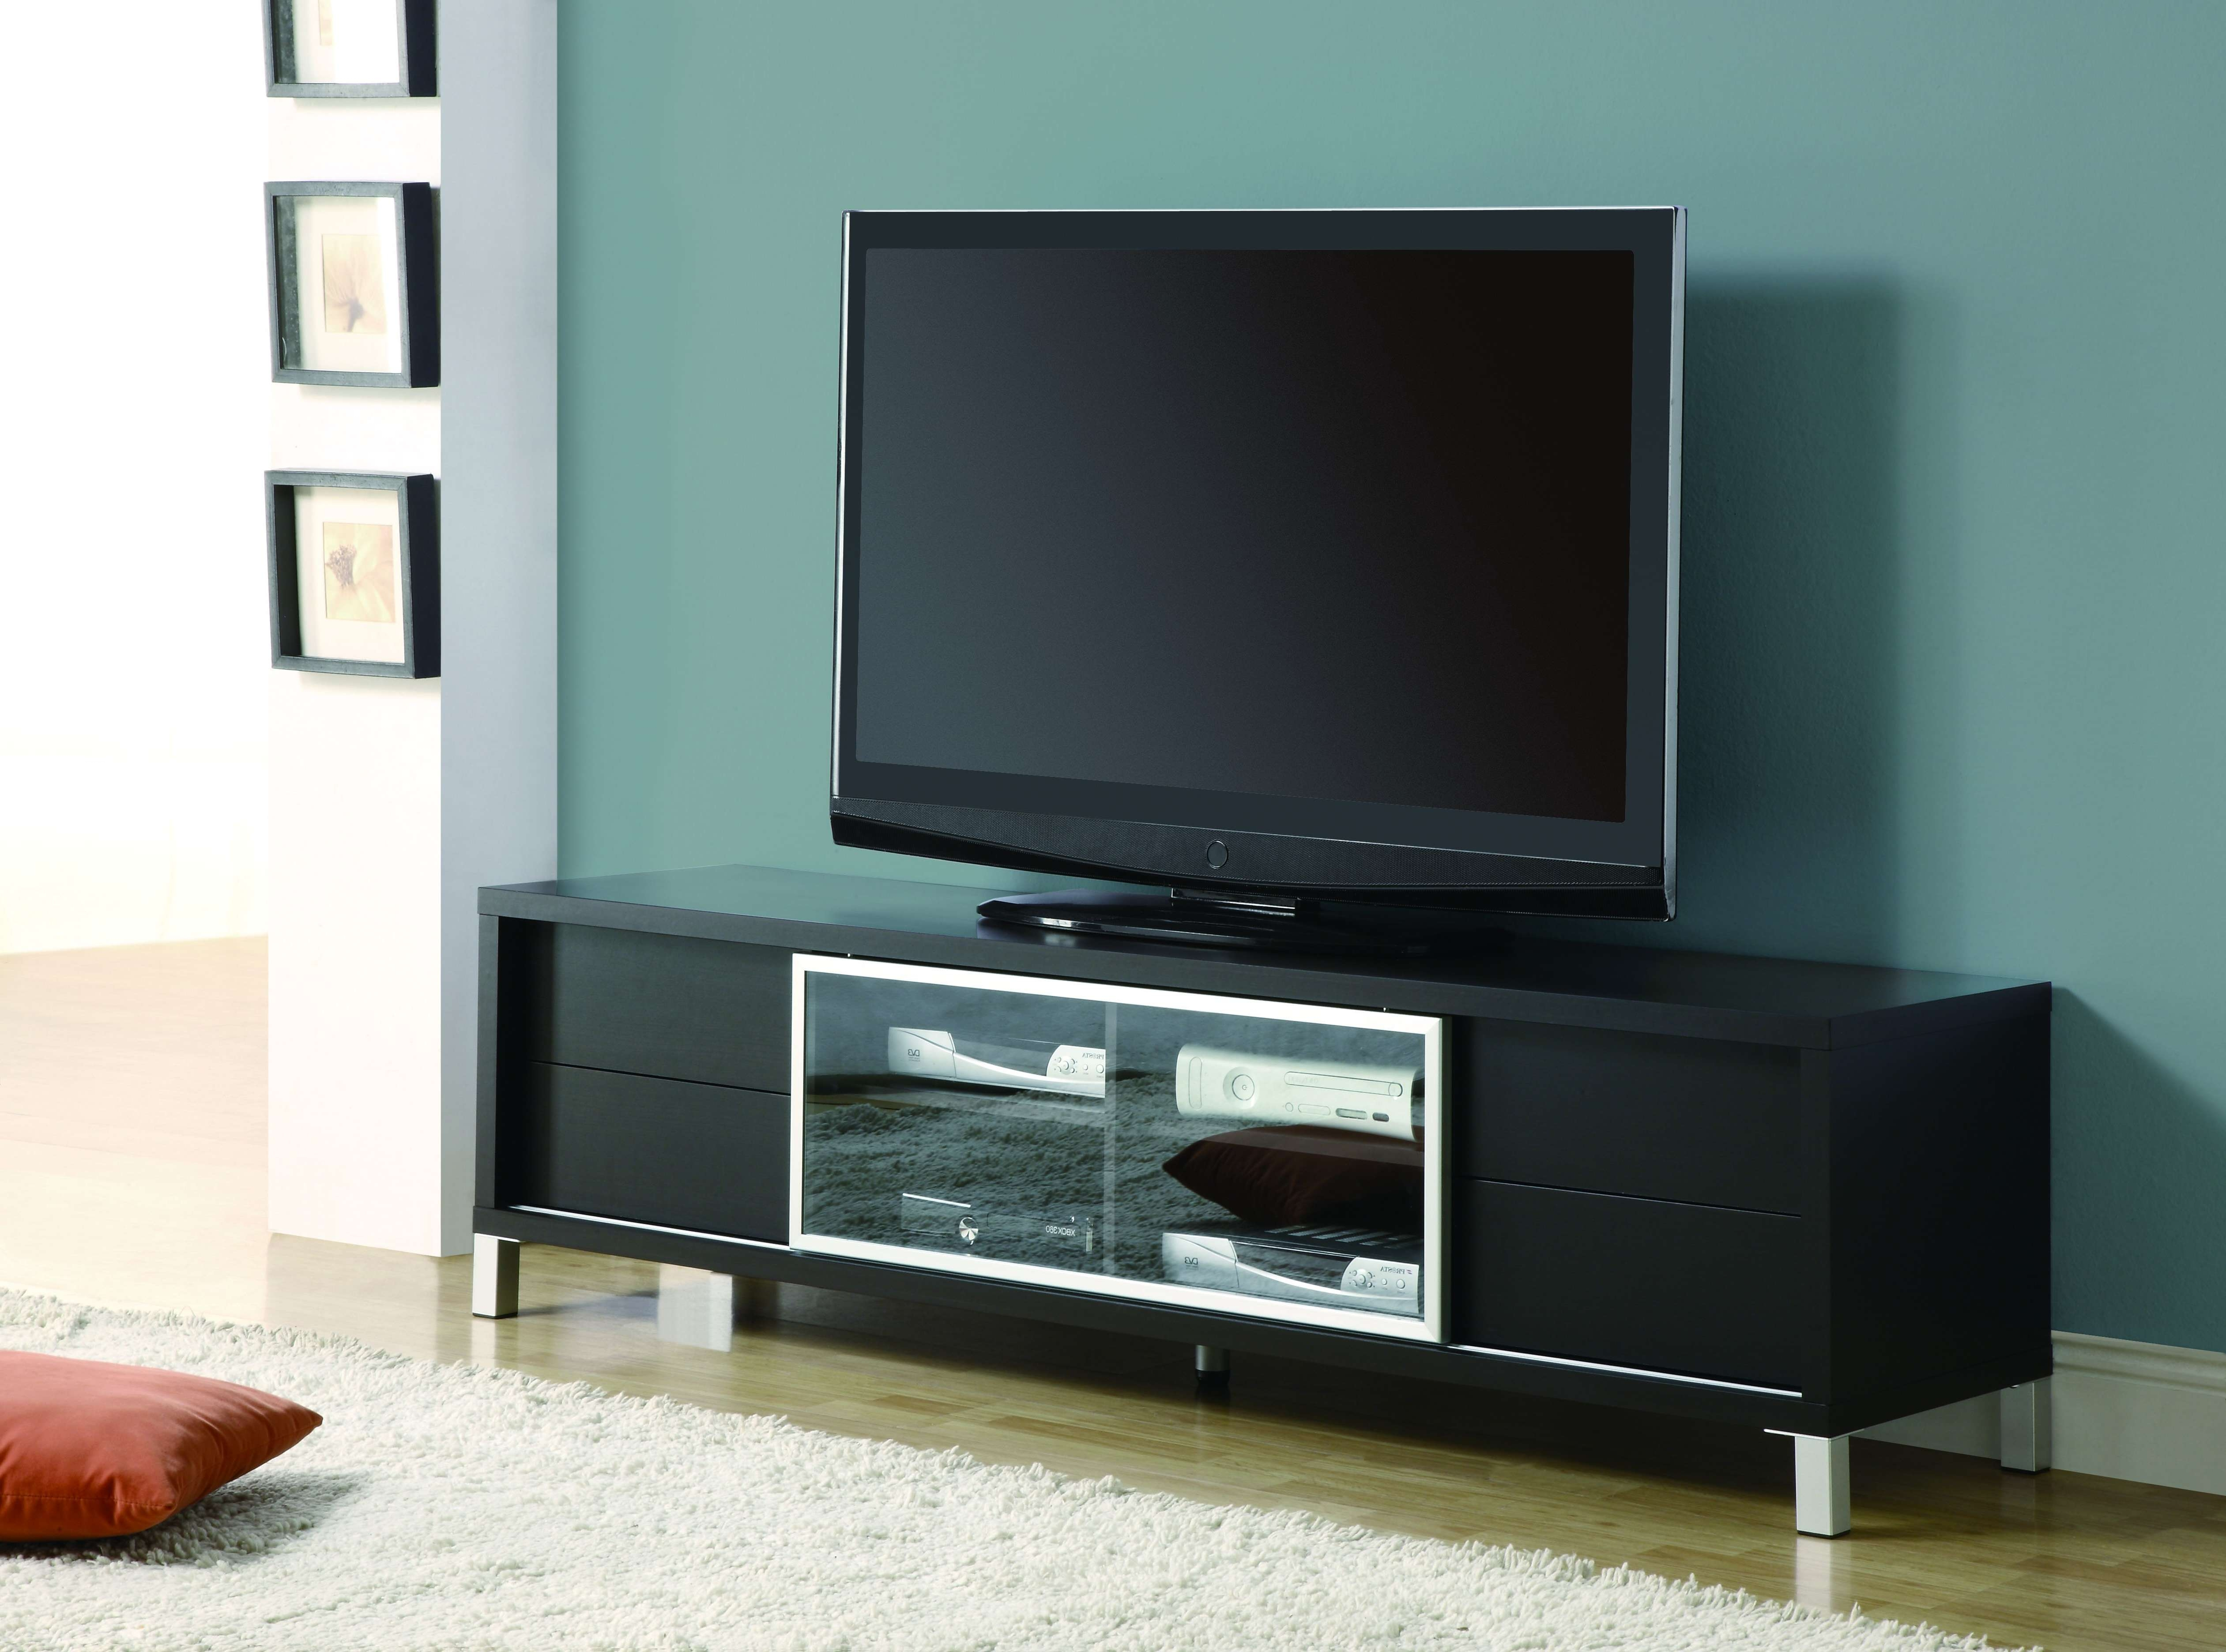 Black Painted Oak Wood Wide Screen Tv Stand Mixed Light Blue Wall Intended For Modern Tv Stands For Flat Screens (View 13 of 15)